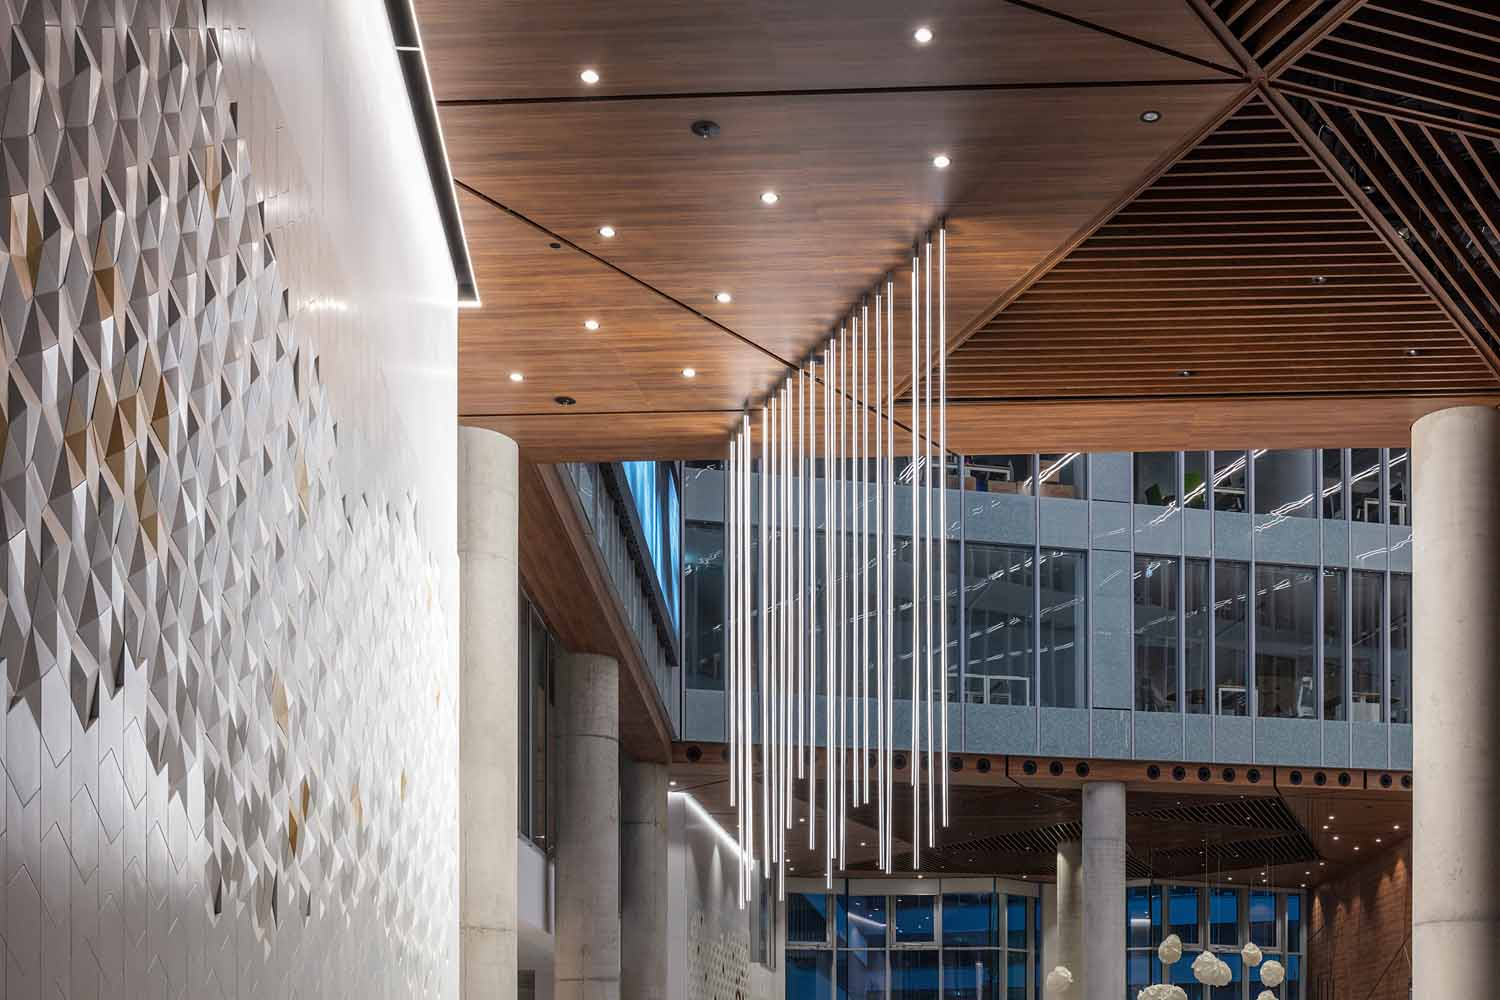 Main Recepction and Atrium - Detail with 3D TIBA Tiles, Suspended lighting and Ceiling TIBA Architects Studio kft}